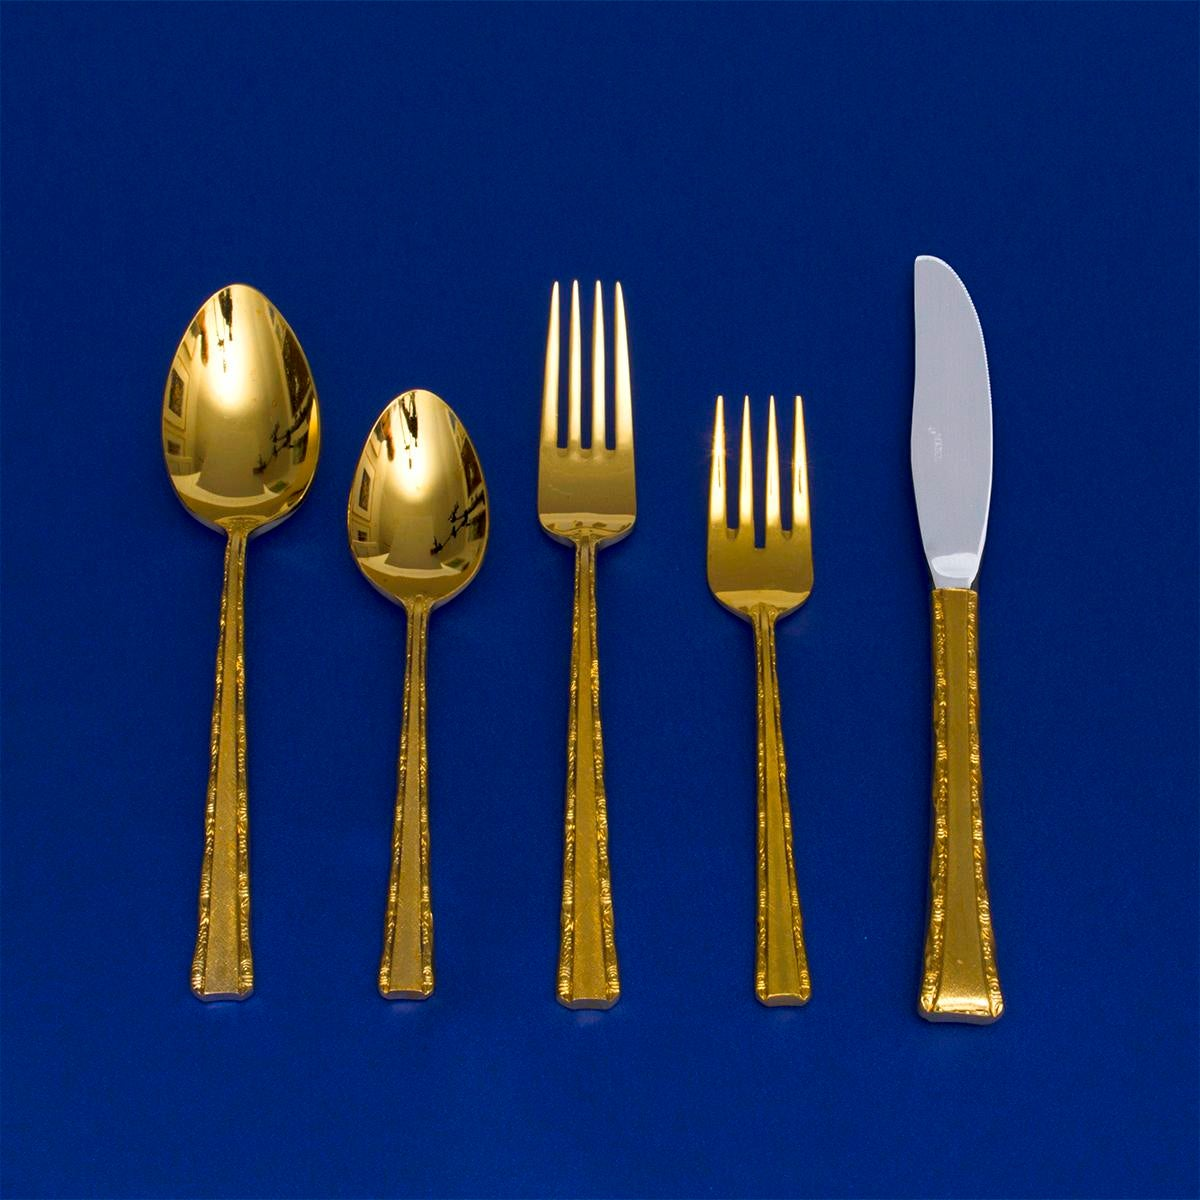 Vintage Gold Plated Dinner Service - 104 Pieces - Image 5 of 5  sc 1 st  Chairish & Vintage Gold Plated Dinner Service - 104 Pieces | Chairish